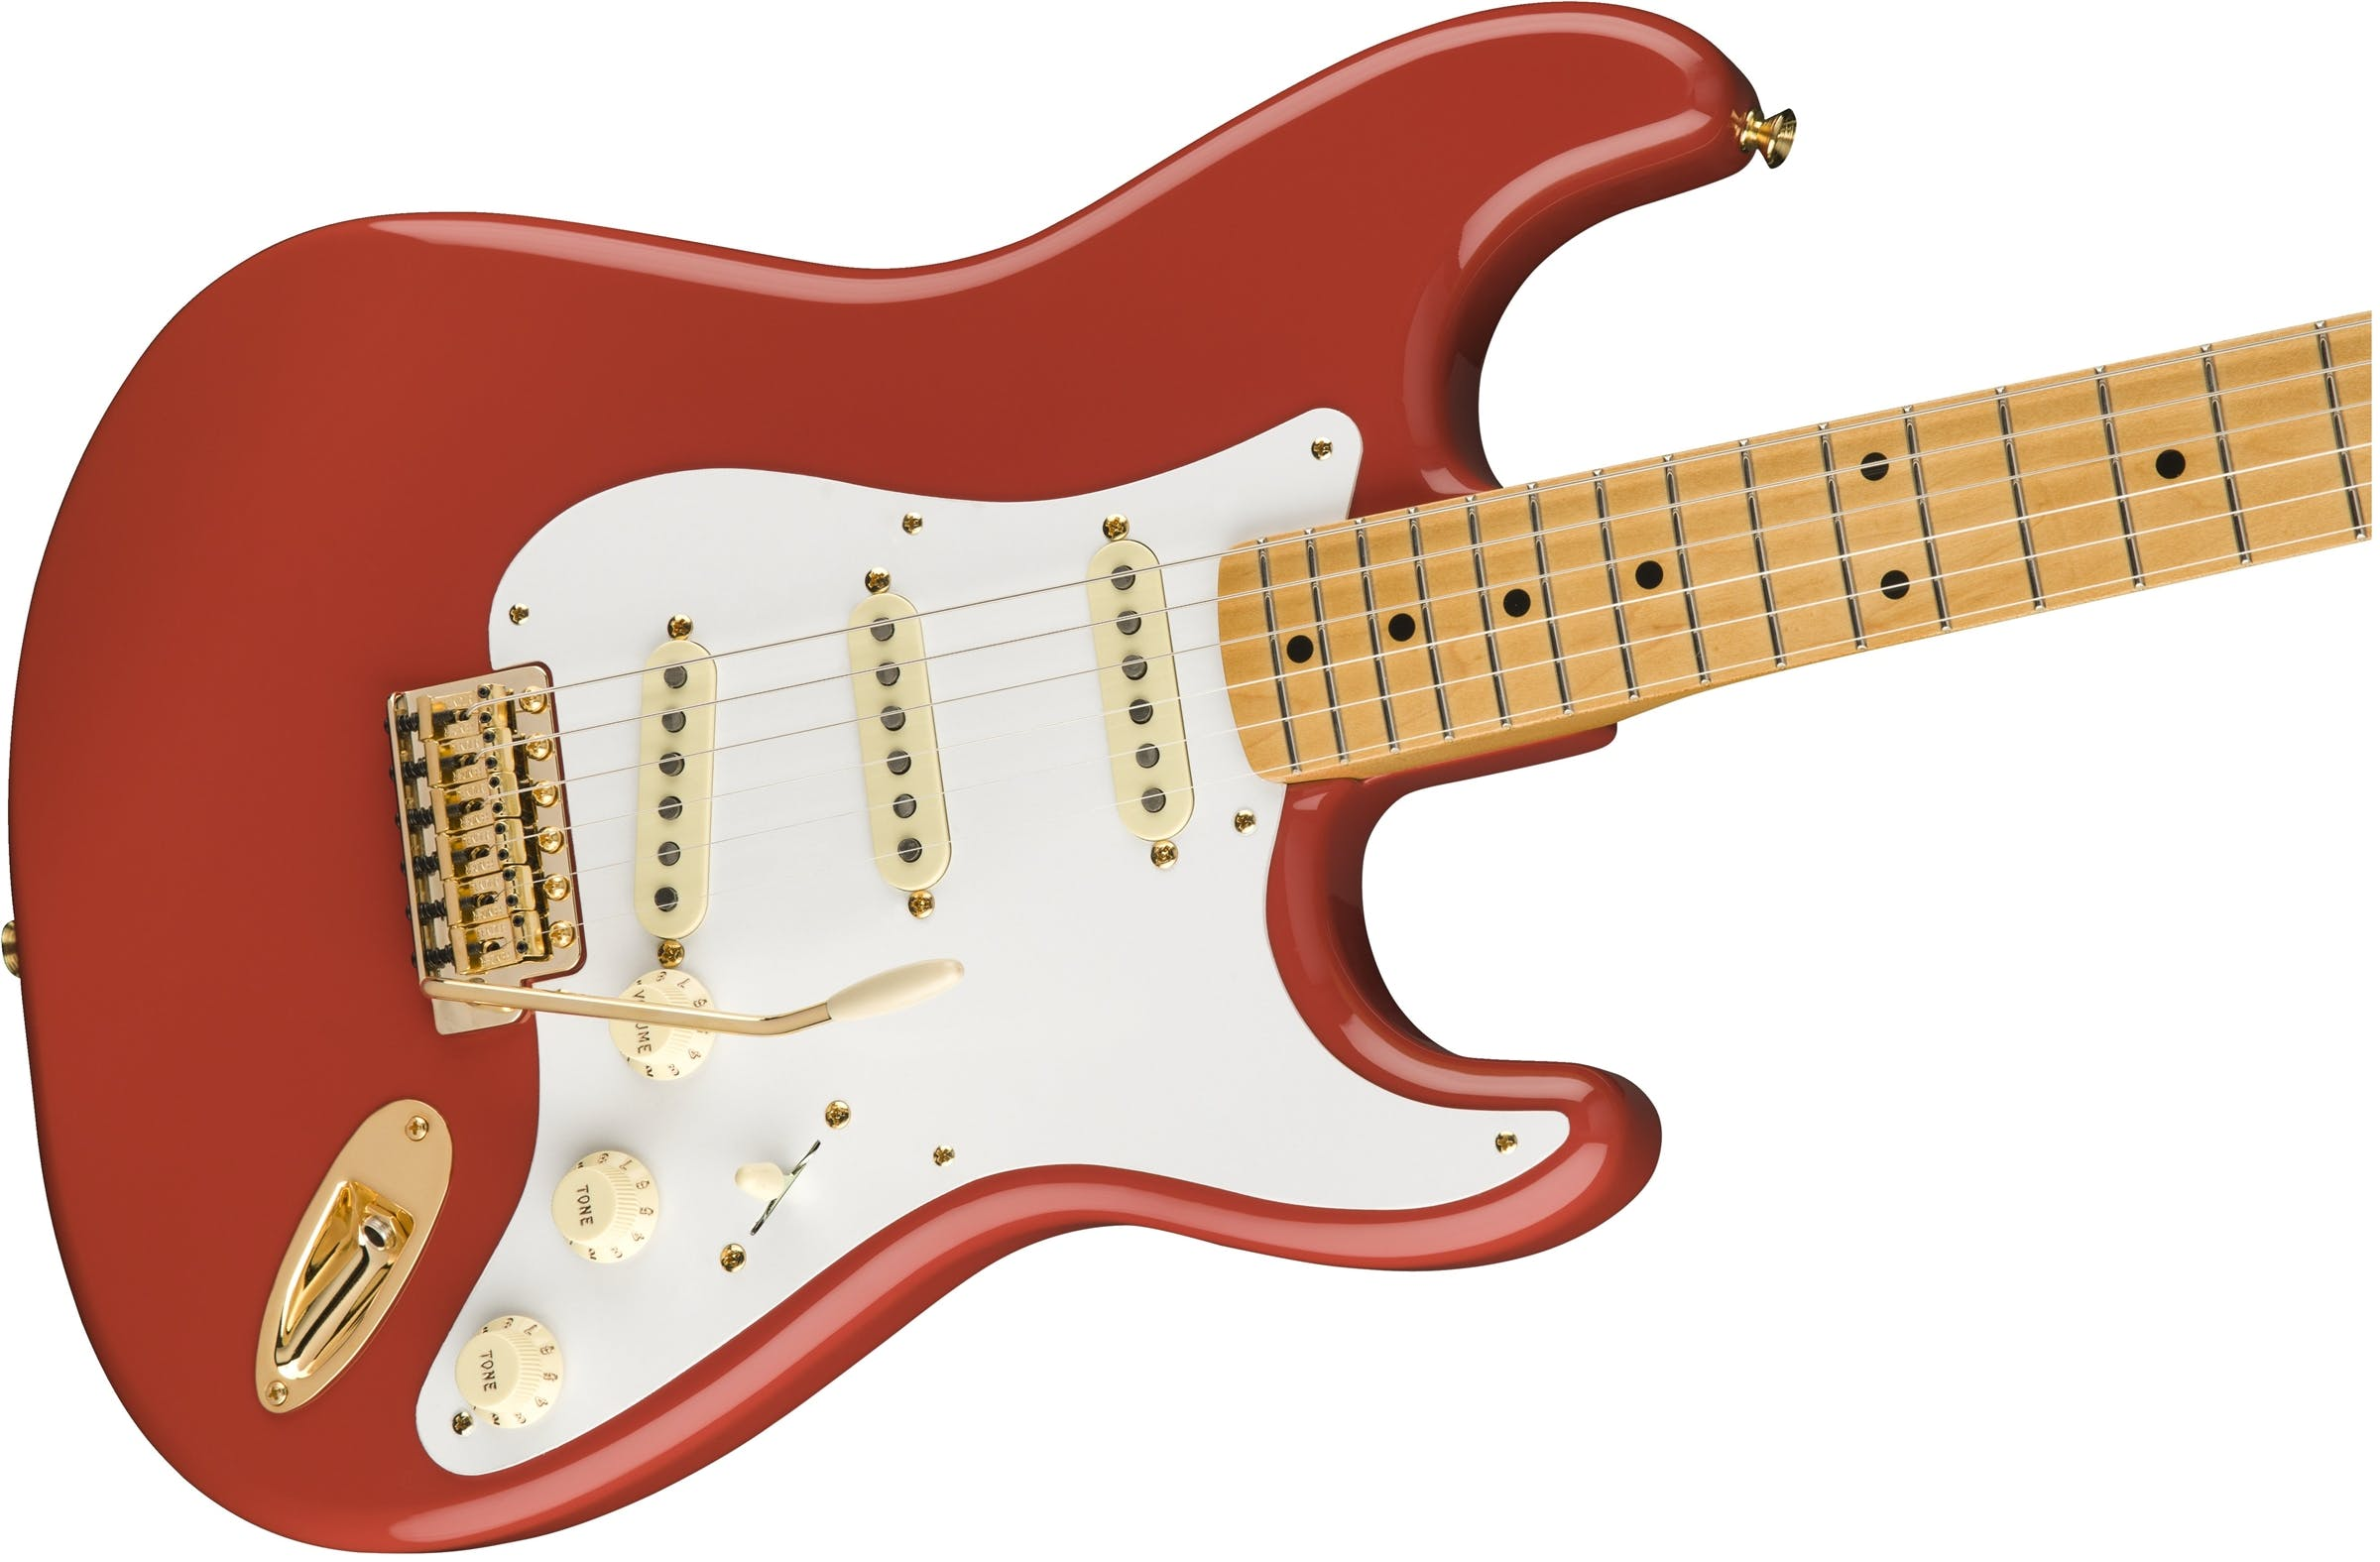 Fender FSR Limited Classic Series '50s Stratocaster in